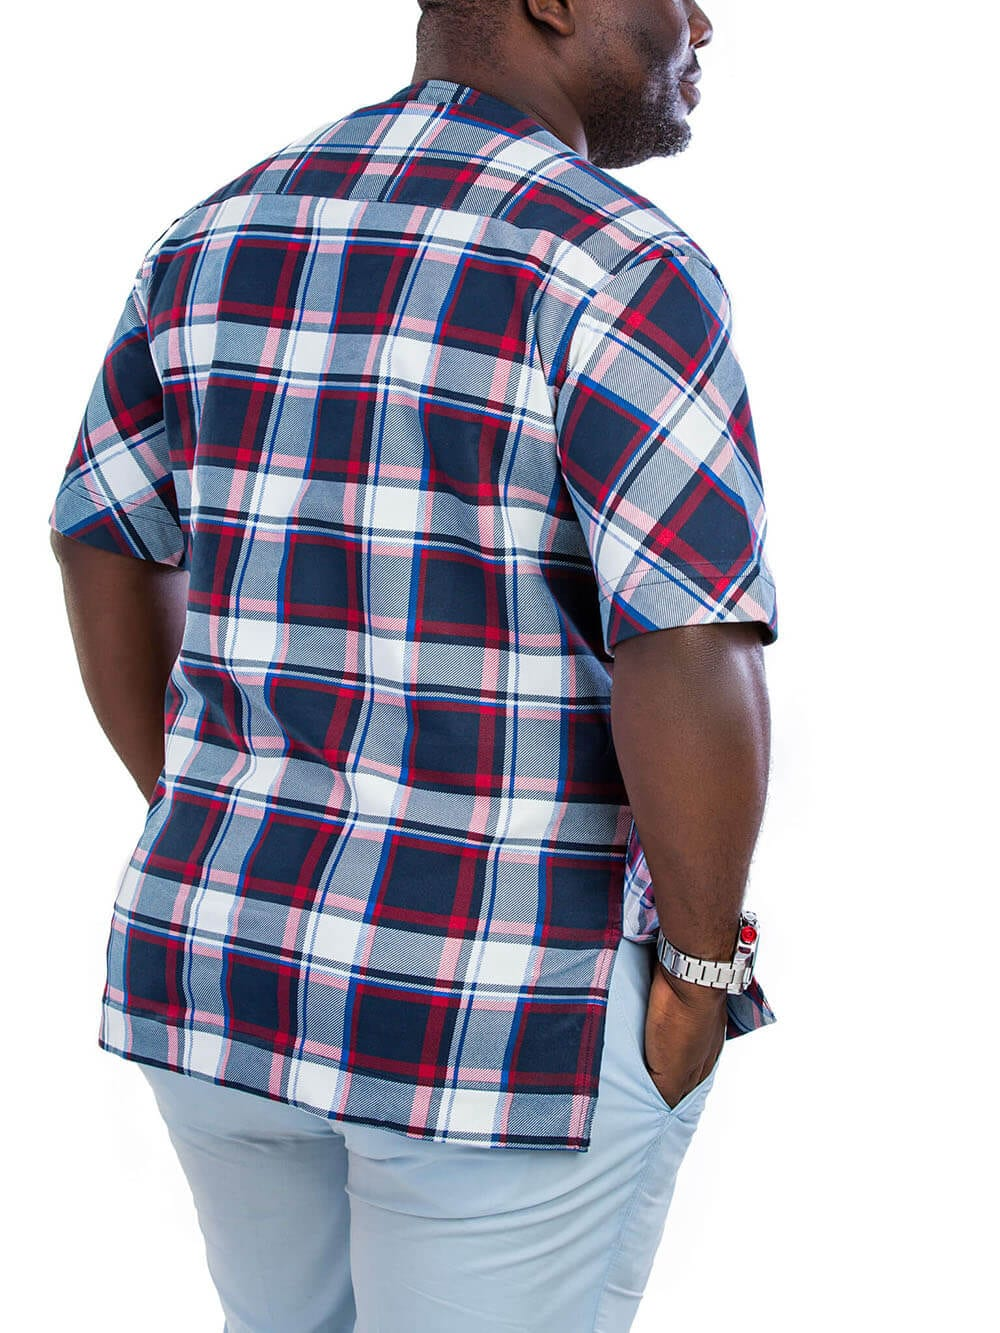 Men's Navy Blue And Wine Round Neck Short Plaids and Stripes Short Sleeve Shirts with Pocket Squared